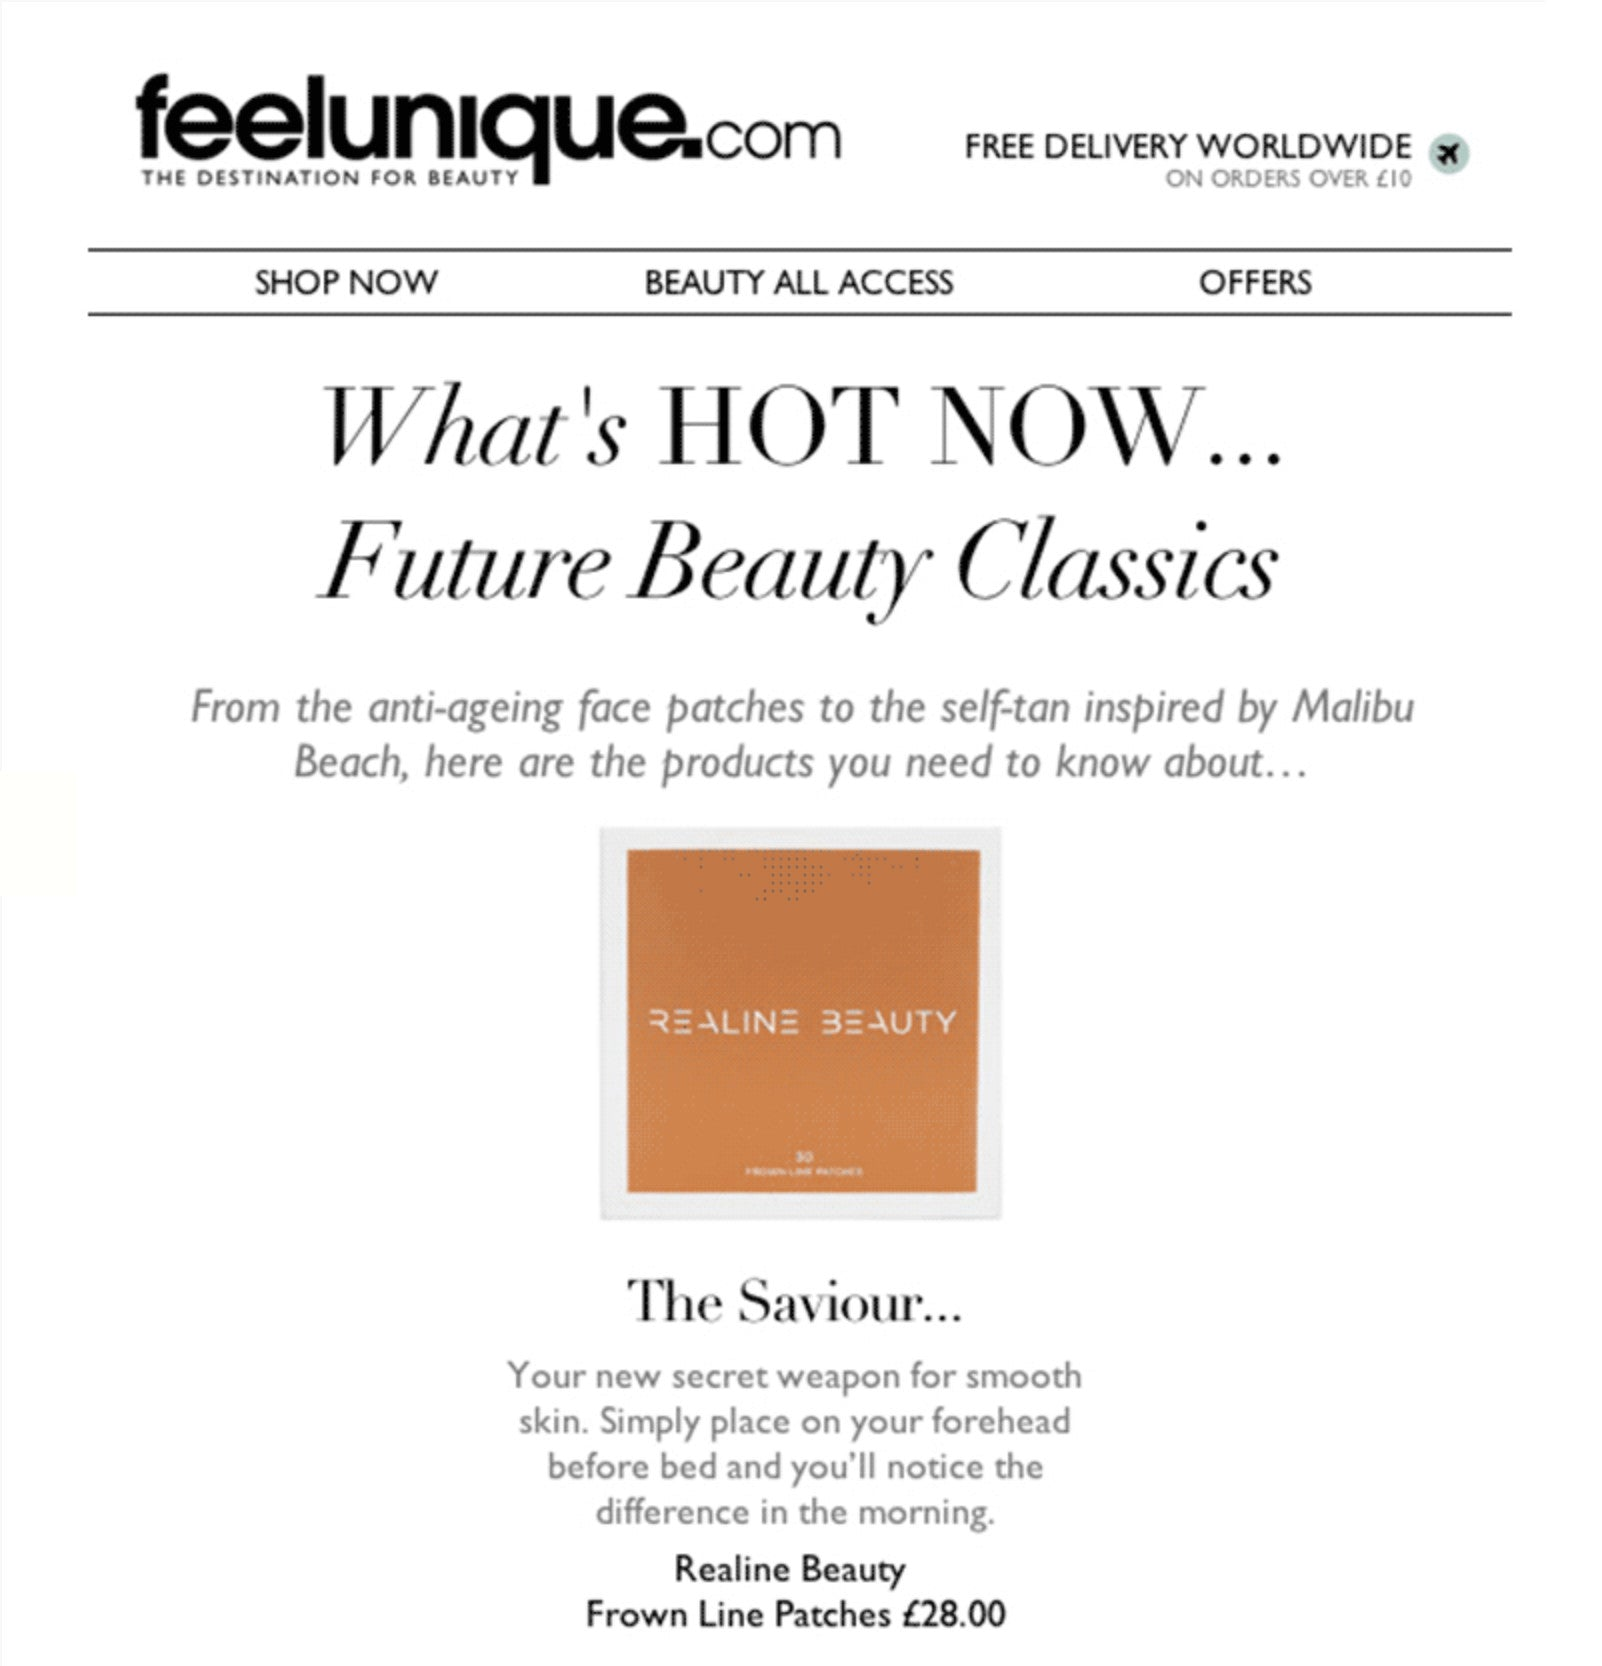 Feelunique.com newsletter